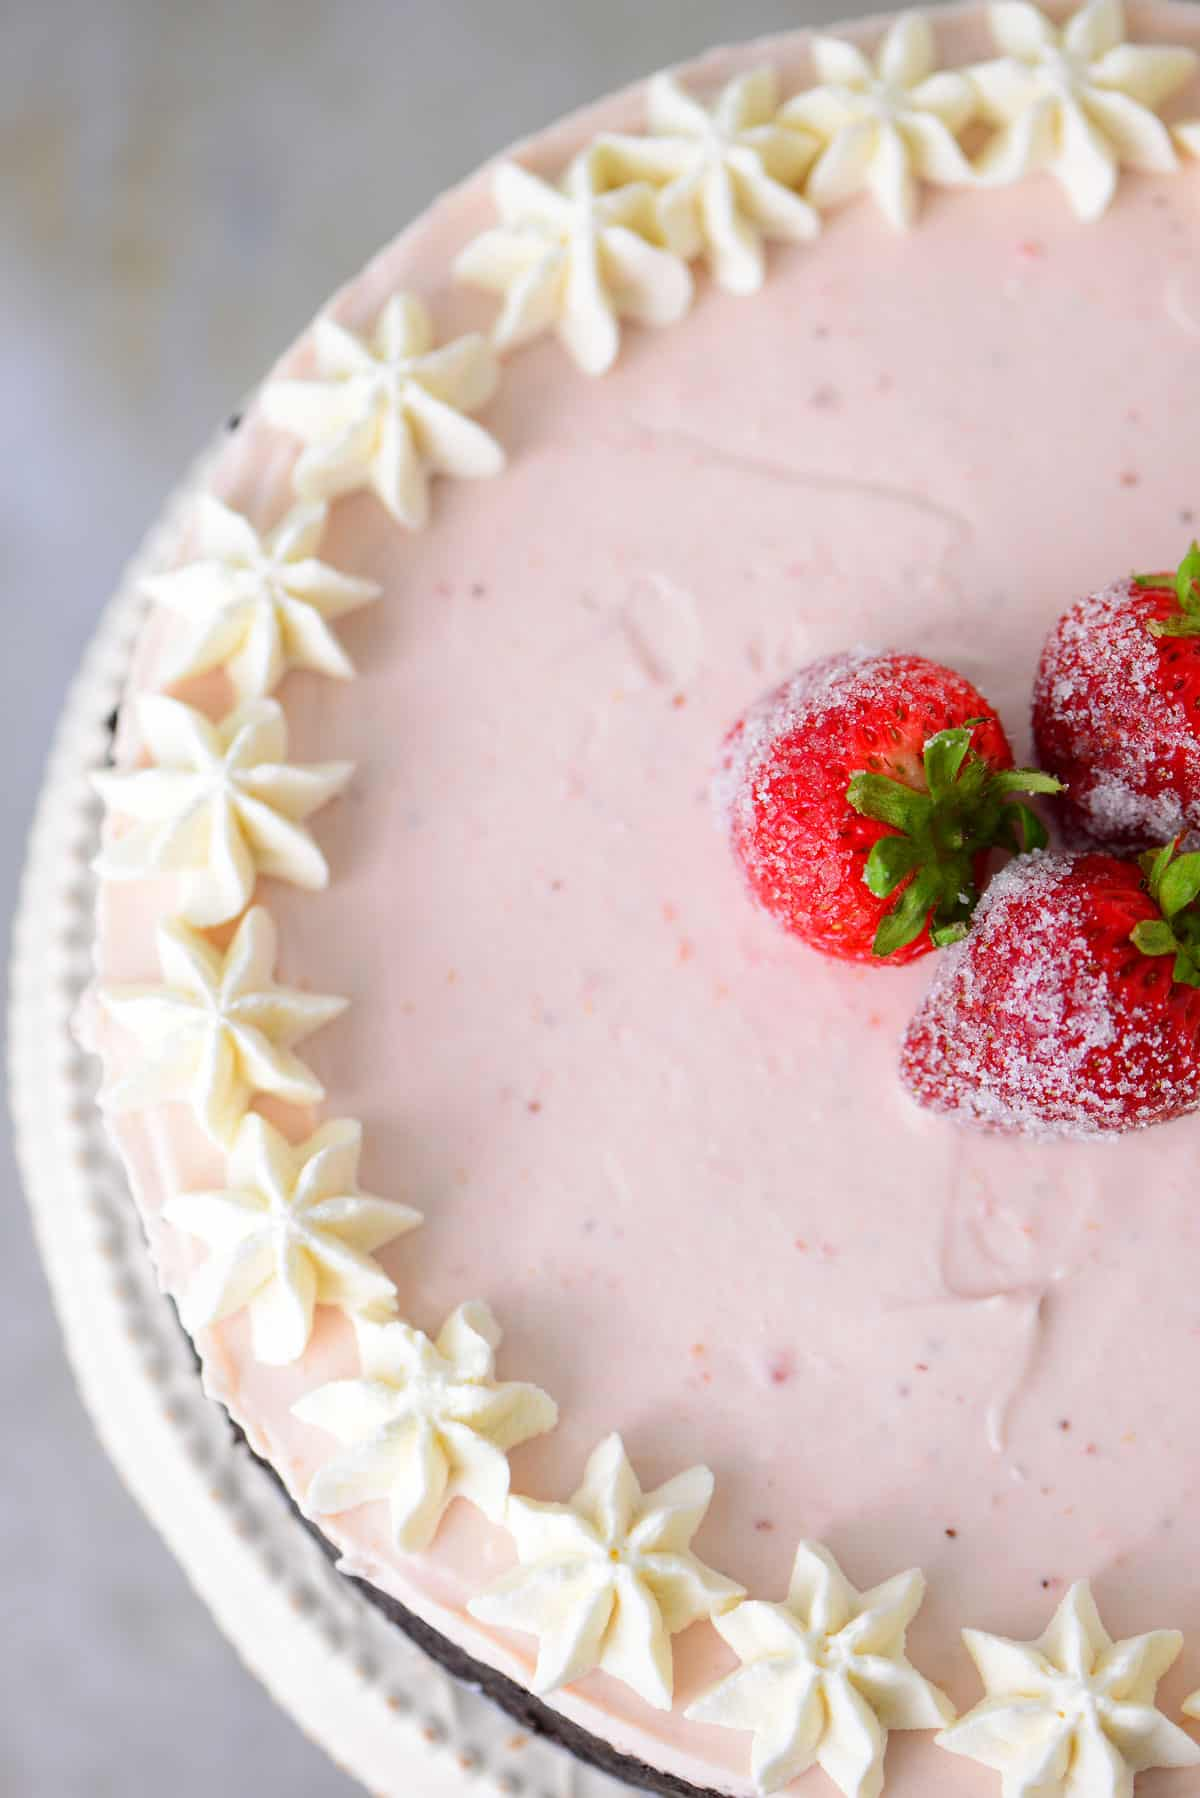 strawberry cheesecake with sugar coated strawberries on top